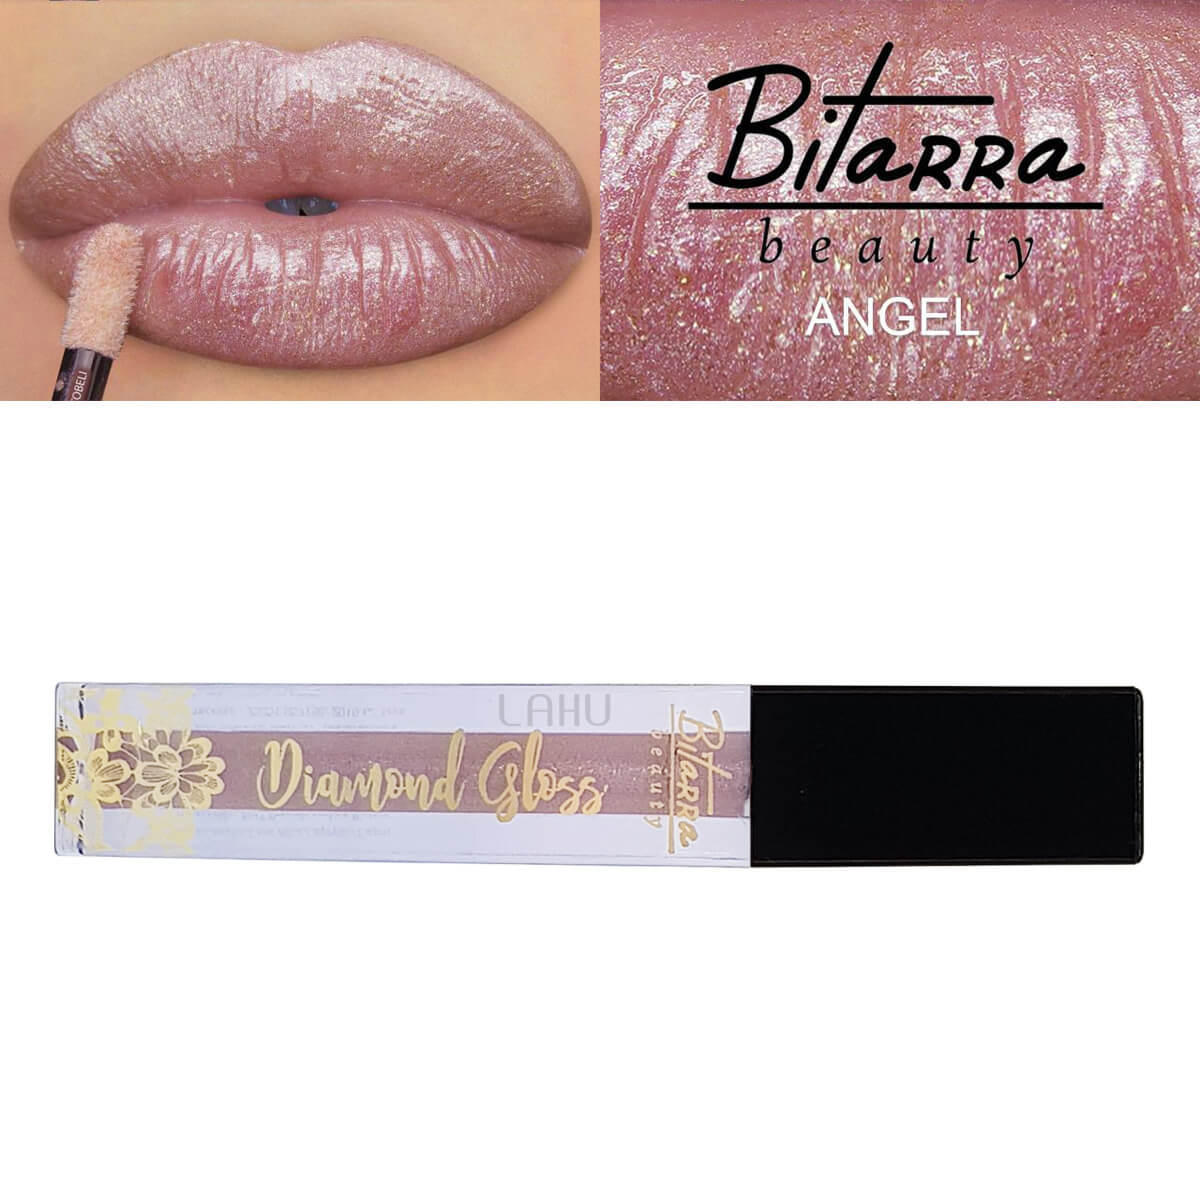 Gloss Diamond Angel Bitarra